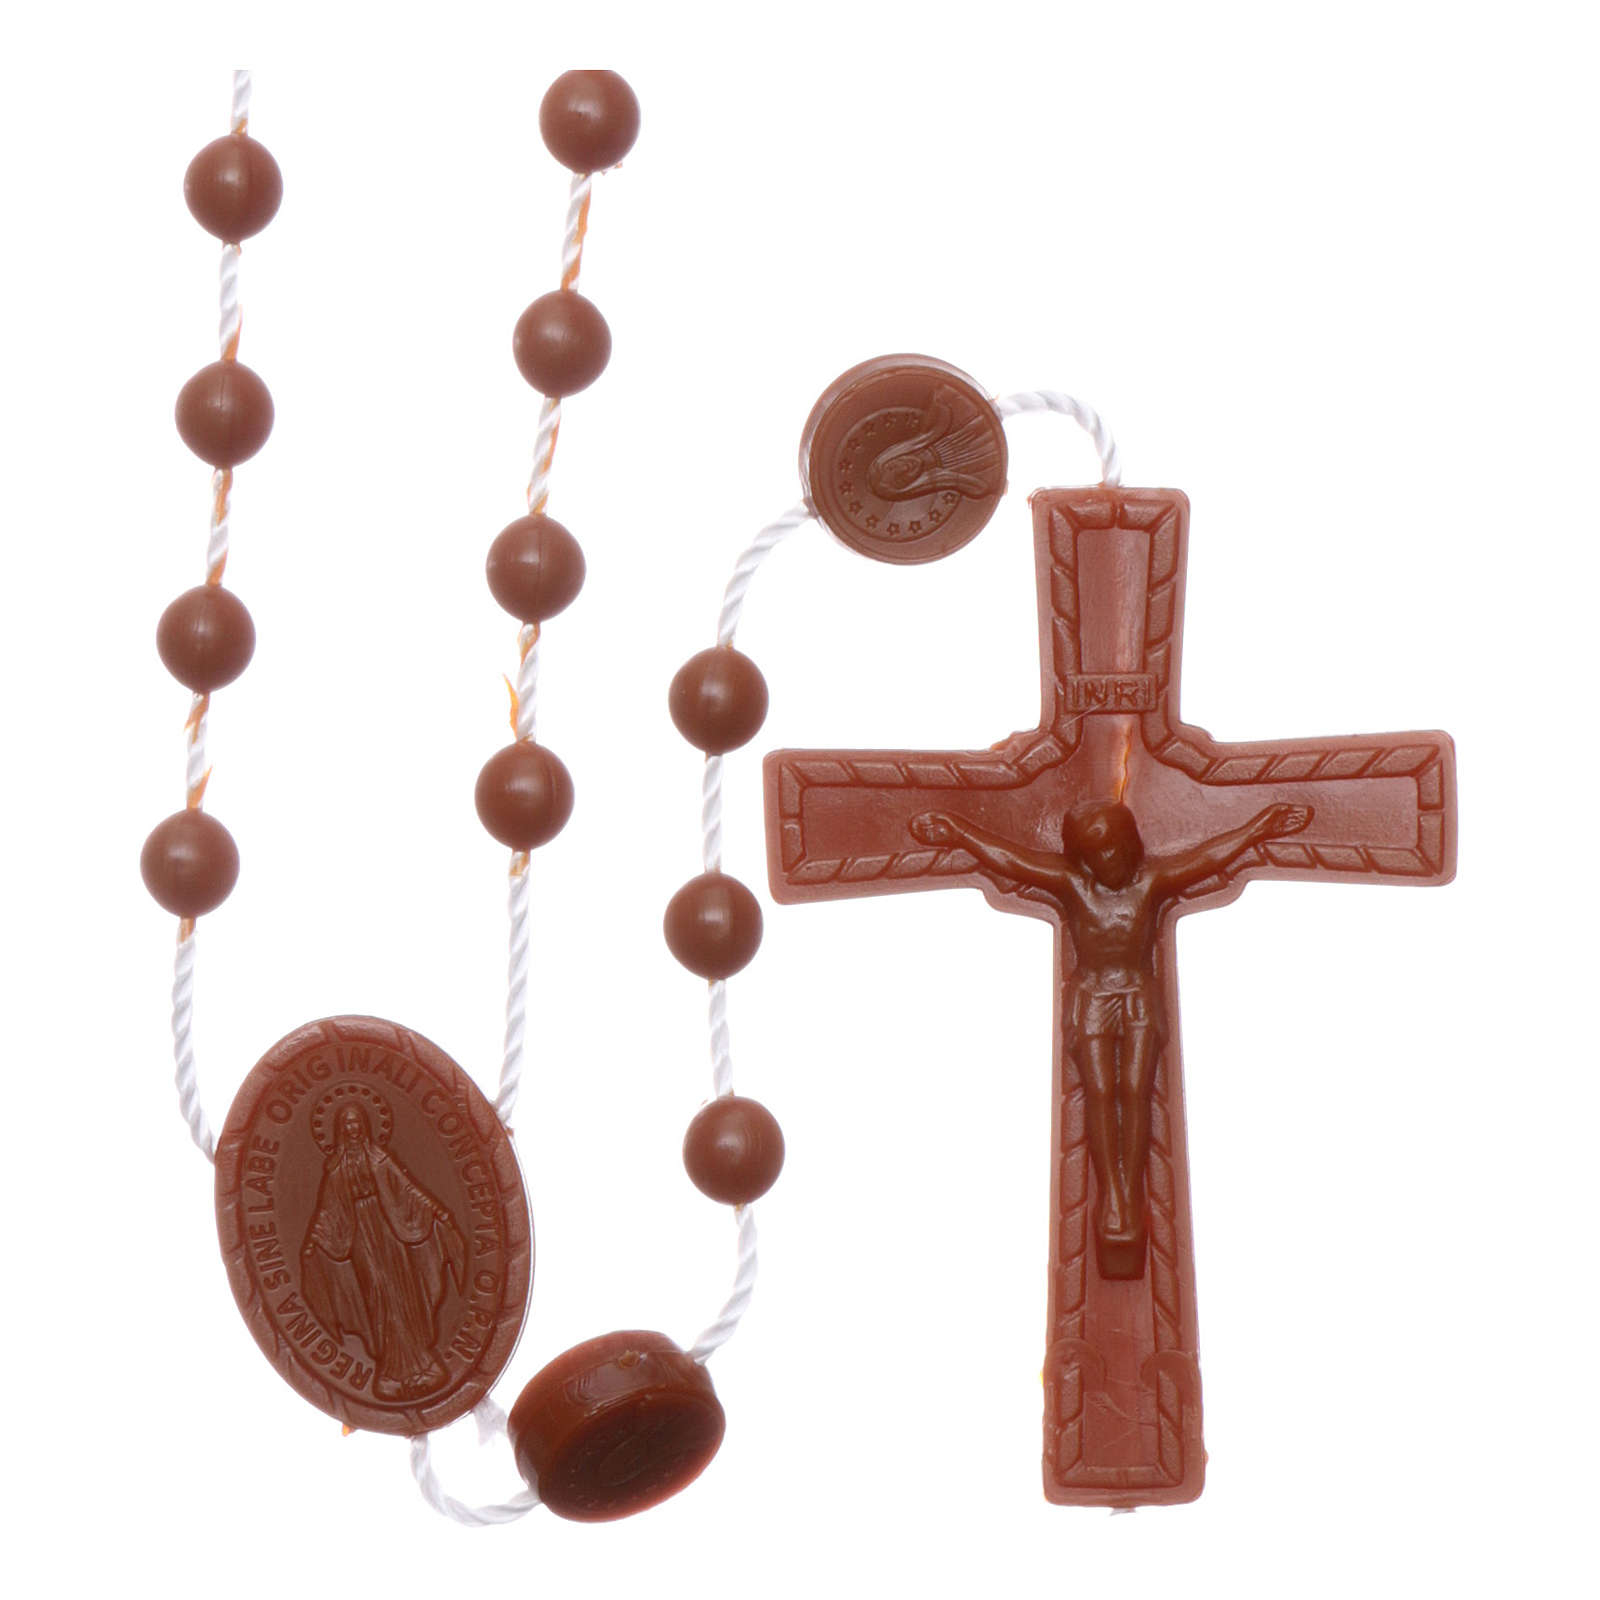 Nylon Our Lady of Miracles rosary in brown color 4